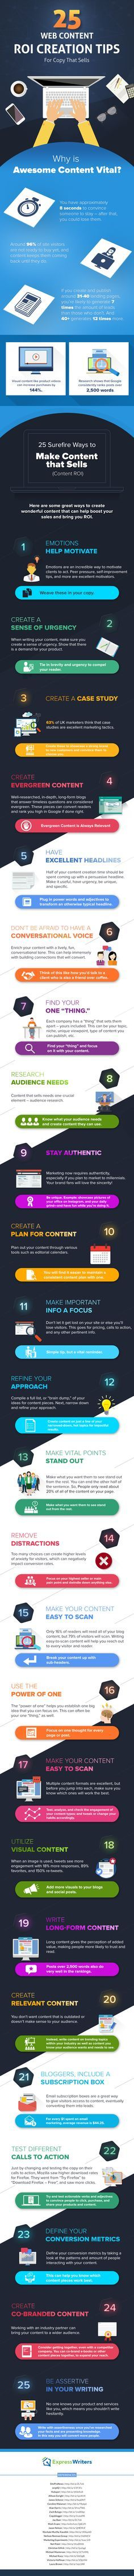 25 Web Content ROI Creation Tips - For Copy That Sells - #infographic